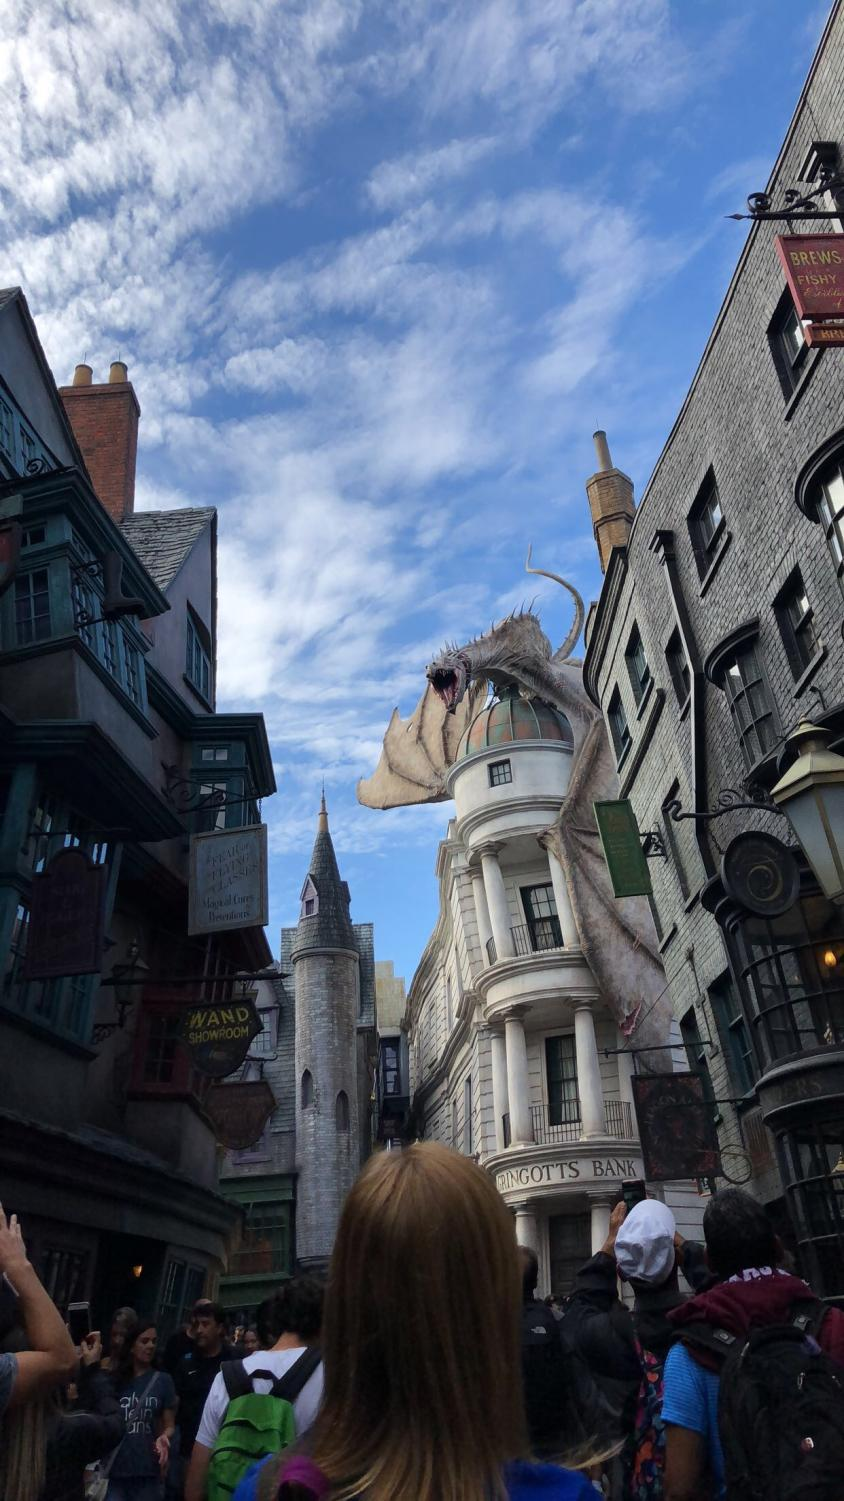 Diagon+Alley+at+Universal%27s+Islands+of+Adventures.